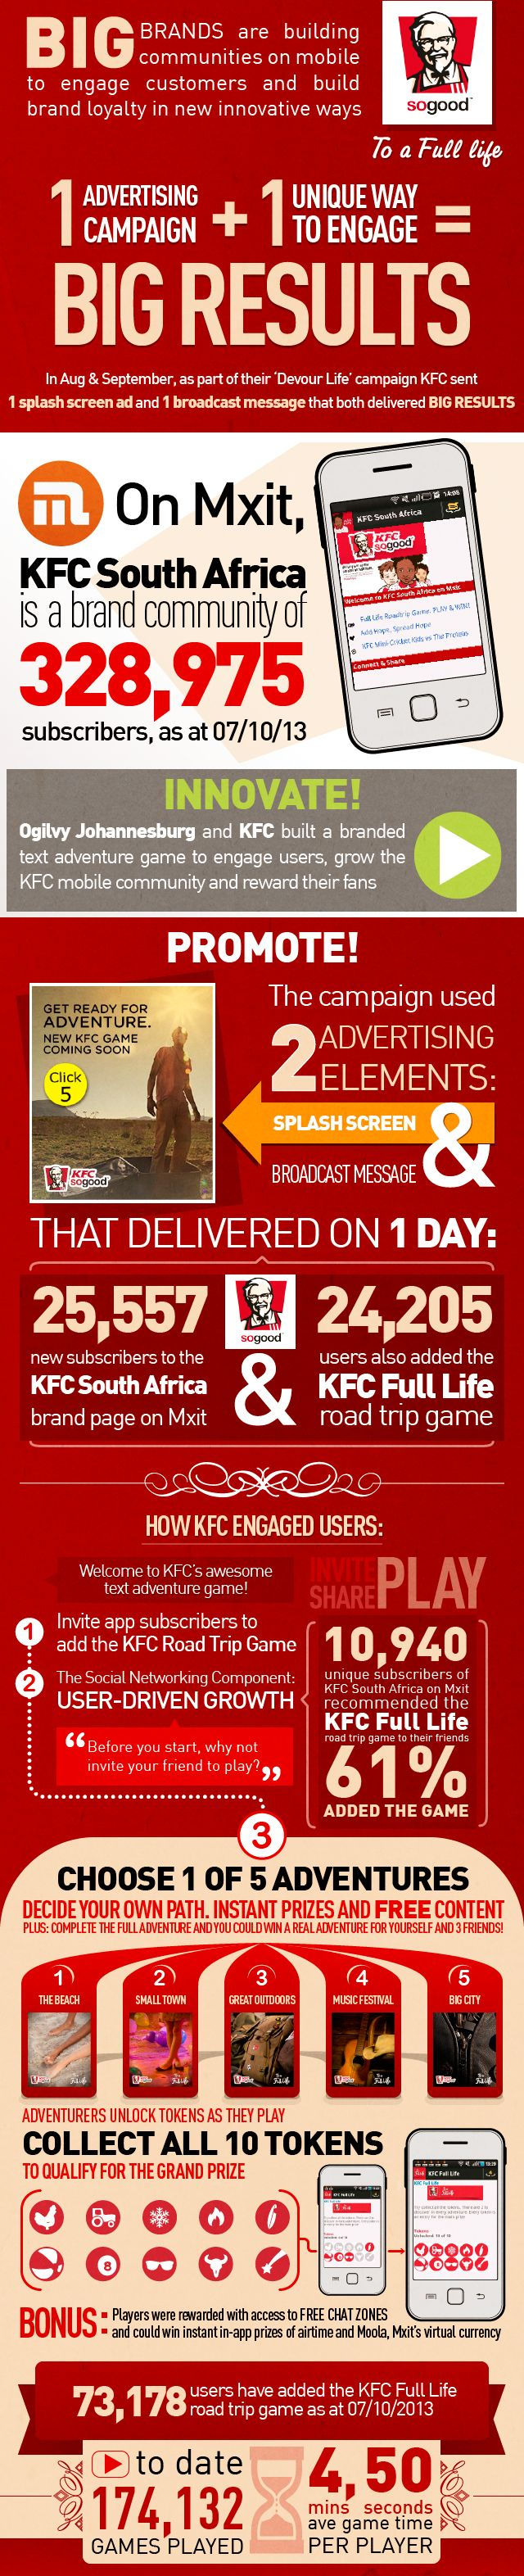 Innovative engagement amplifies the power of mobile ad campaigns: KFC South Africa invited users to take part in a text-based adventure game. As part of the induction to the game, KFC asked game players to share the game with friends and recorded a massive 61% accept rate on these recommendations - powerful stuff!